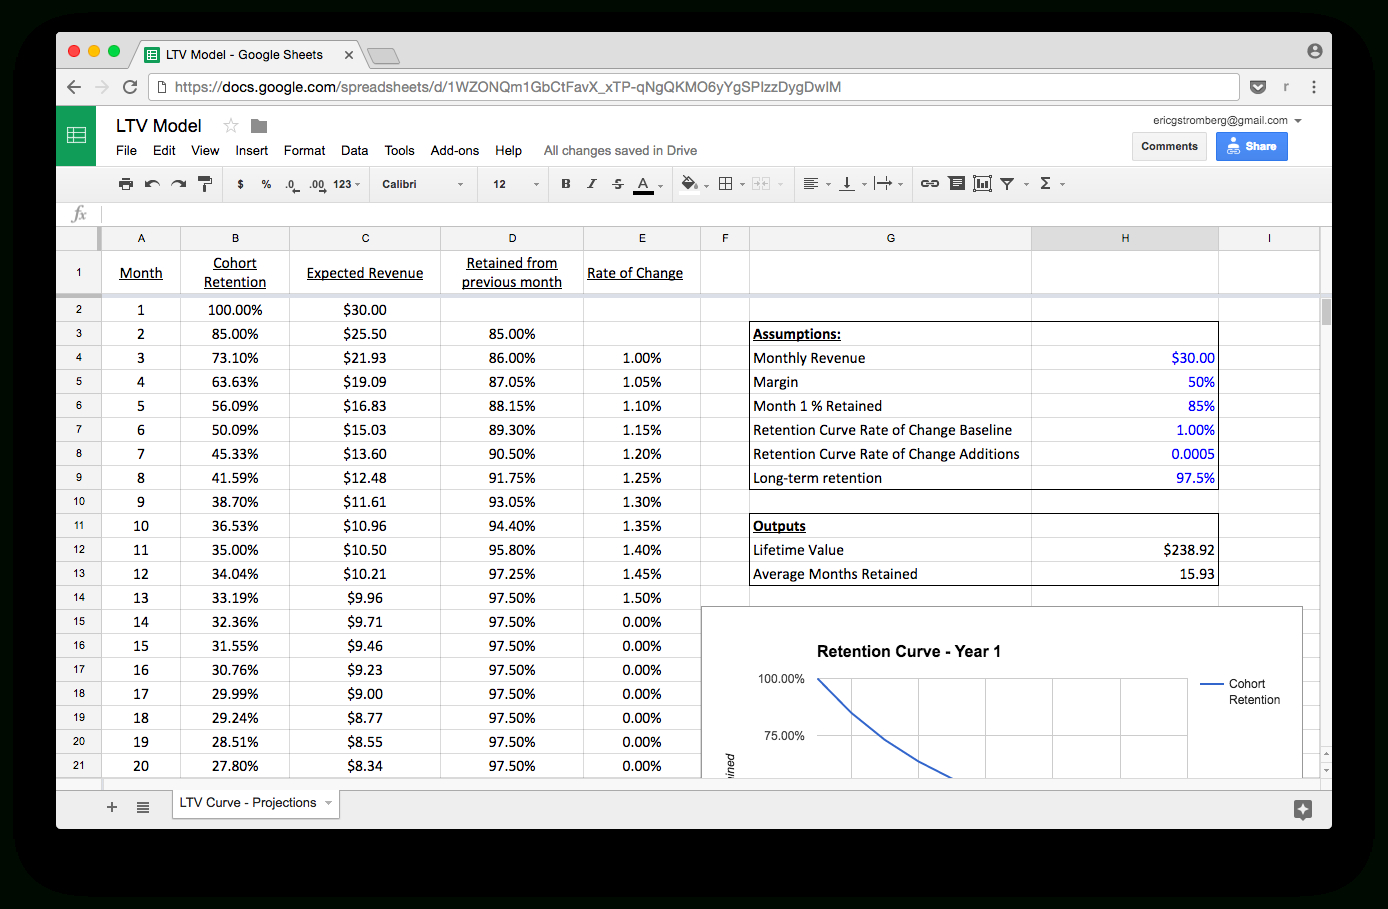 Gp Calculator Spreadsheet Throughout A Spreadsheet For Calculating Subscription Lifetime Value